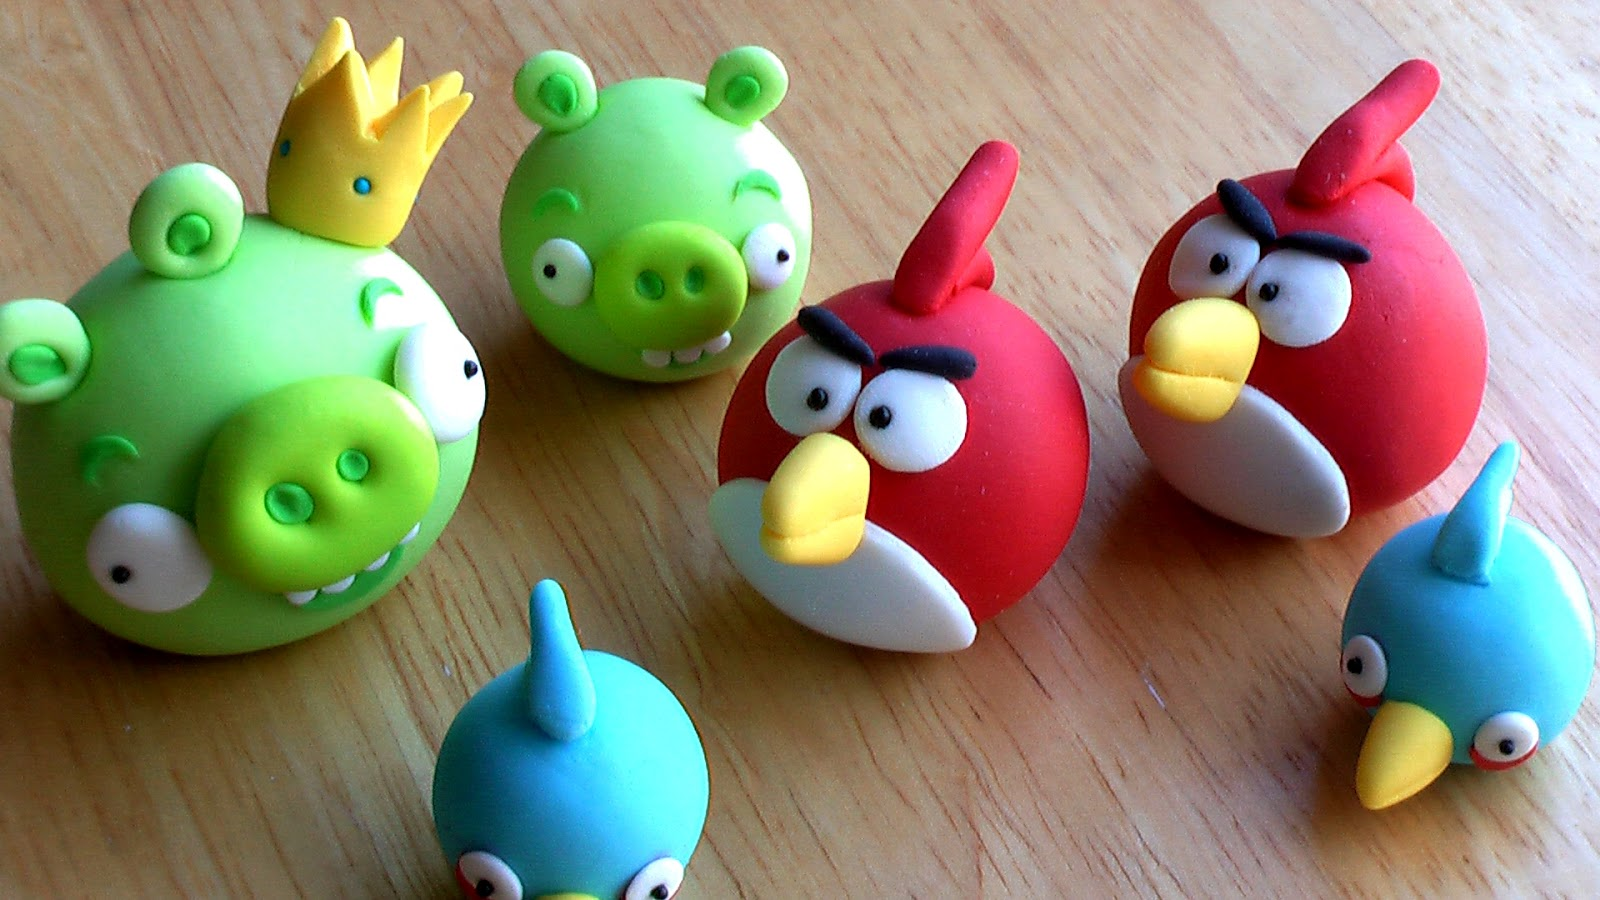 sweet perfections cakes edible angry birds cake toppers